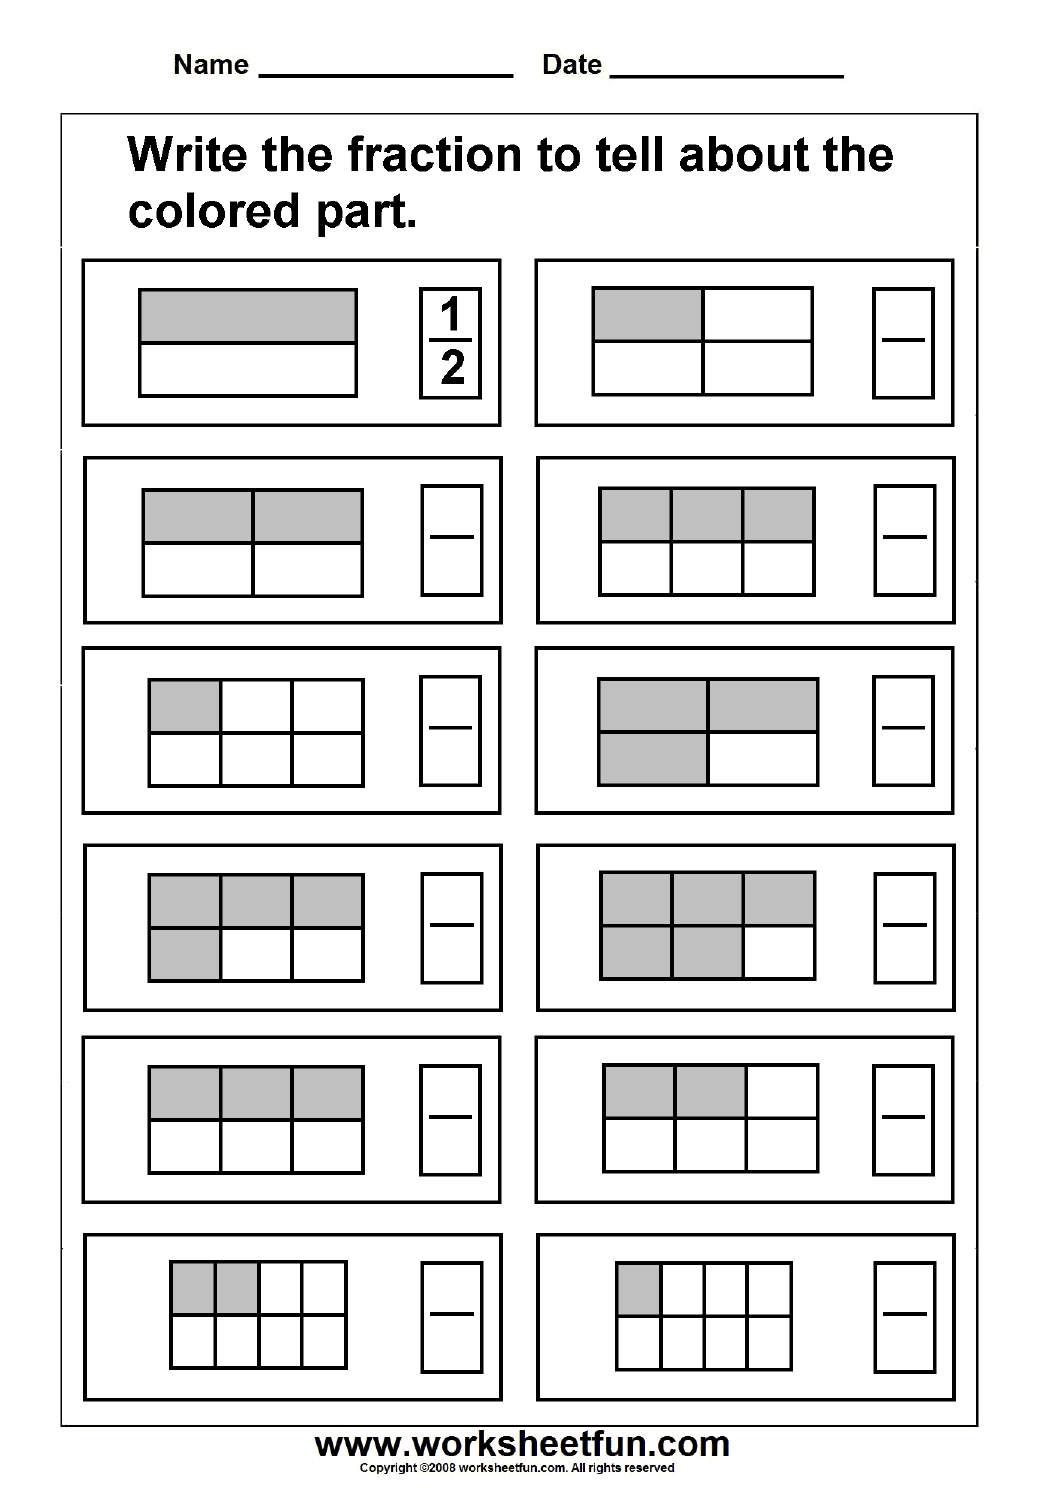 small resolution of Fraction Worksheets For Grade 3 Site:pinterest.com To You. Fraction  Worksheets for Grade 3 - 3rd G…   Fractions worksheets